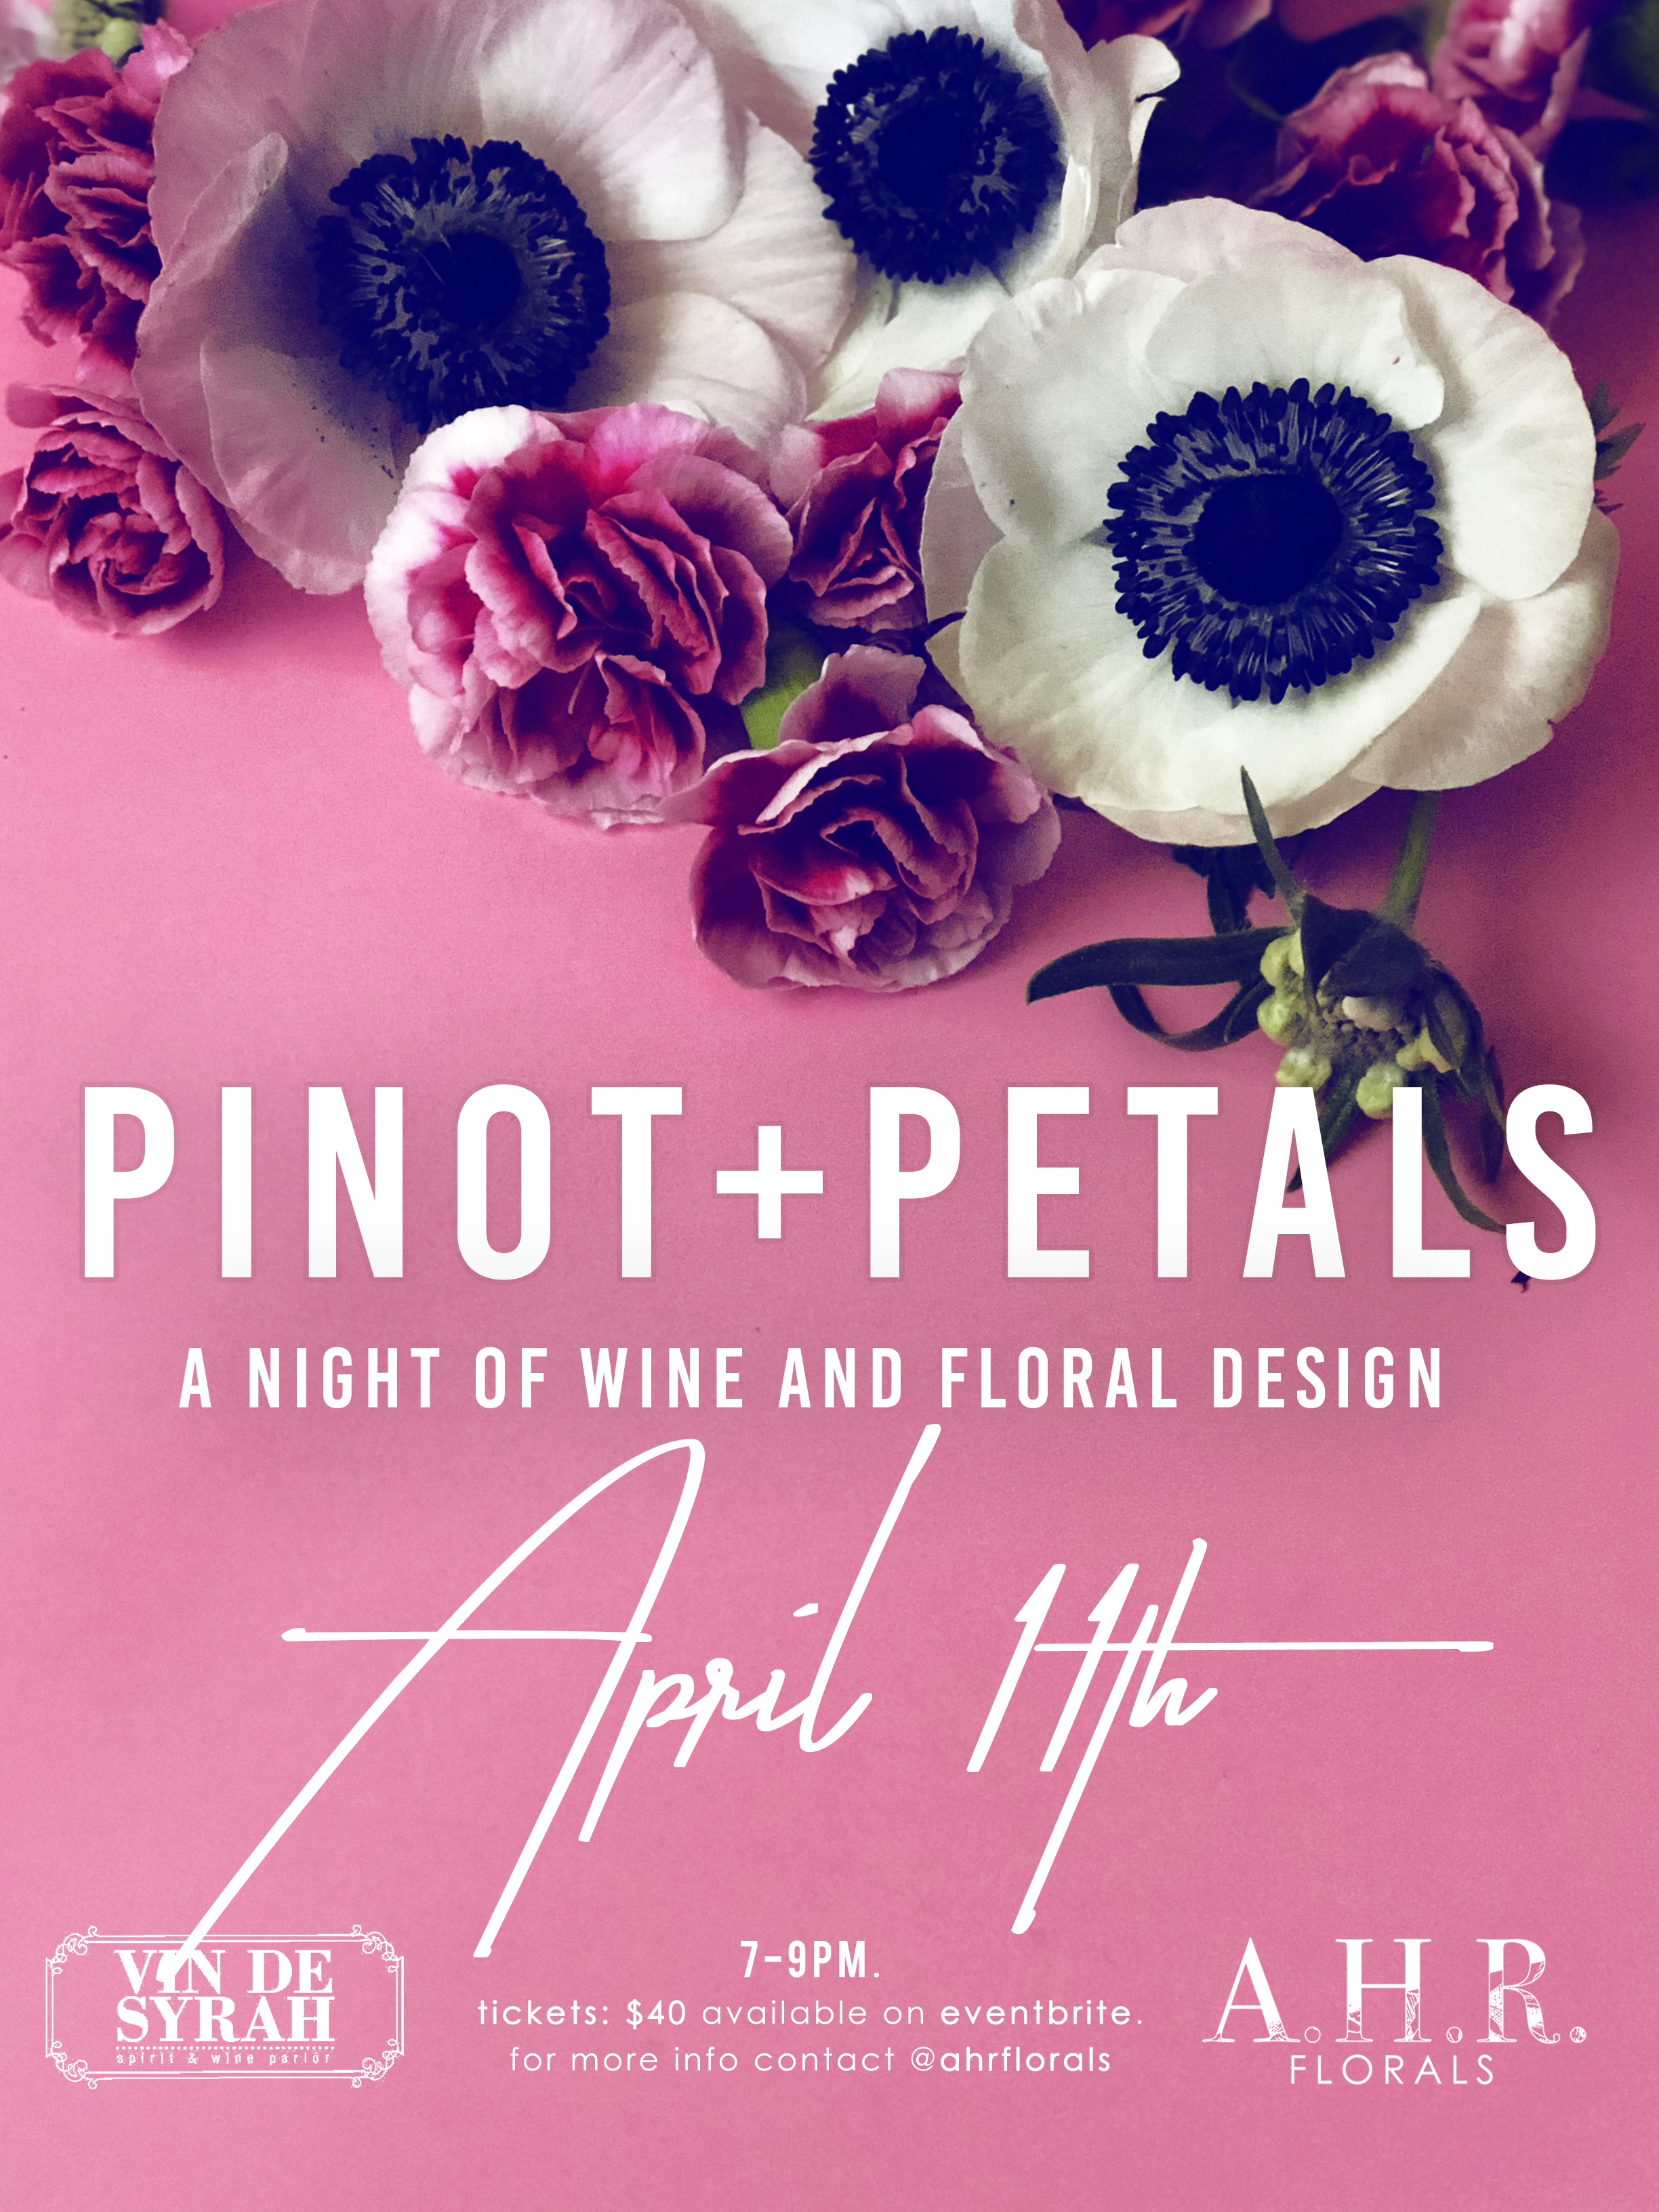 ahr-florals-pinot-and-petals-wine-and-floral-design-april.jpg